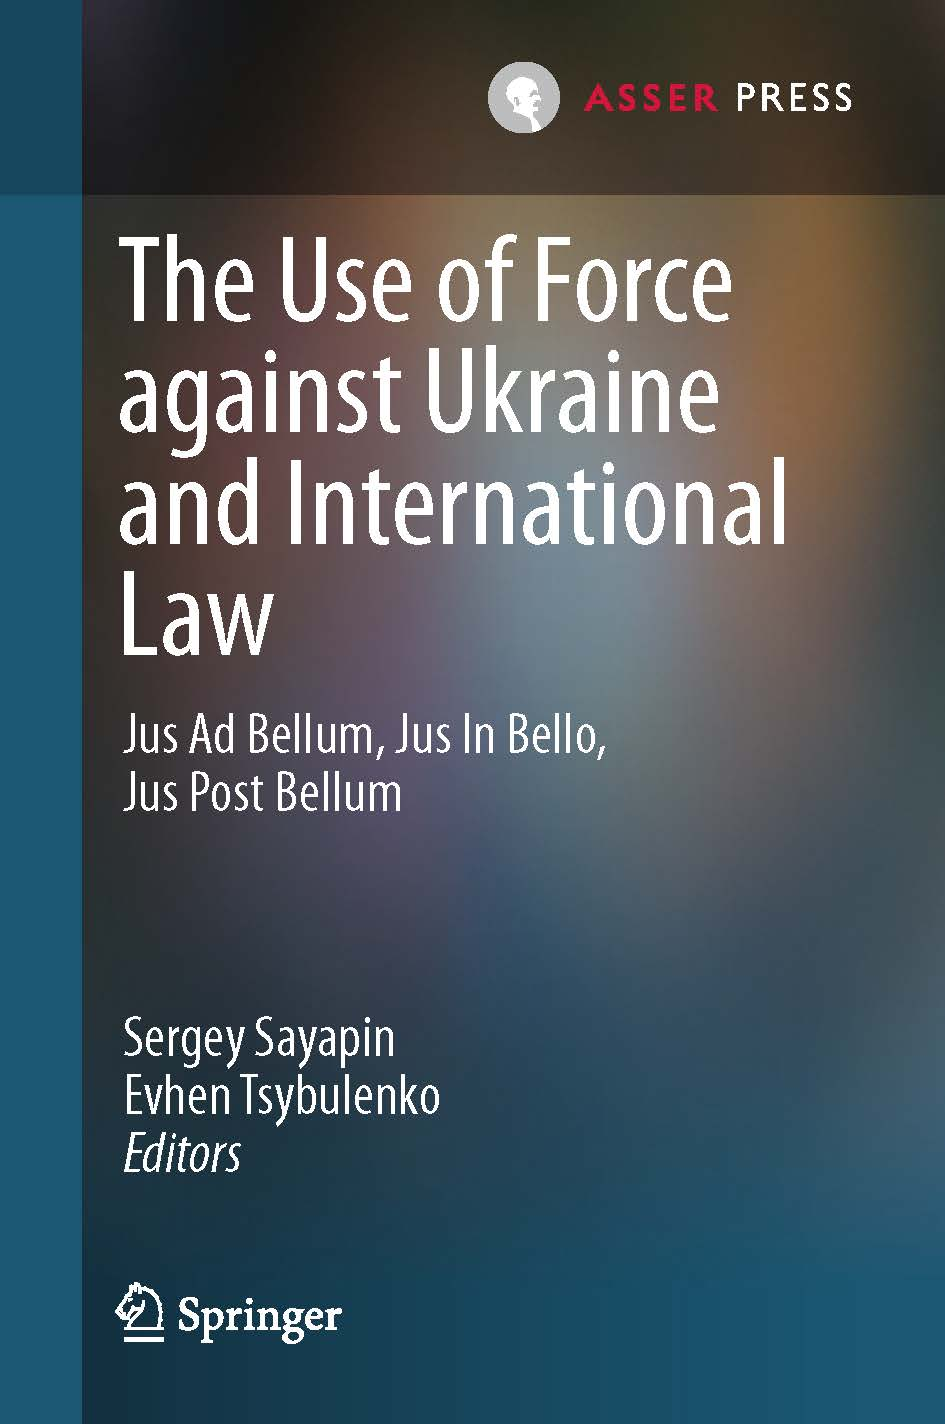 The Use of Force against Ukraine and International Law - Jus ad Bellum, Jus in Bello, Jus Post Bellum